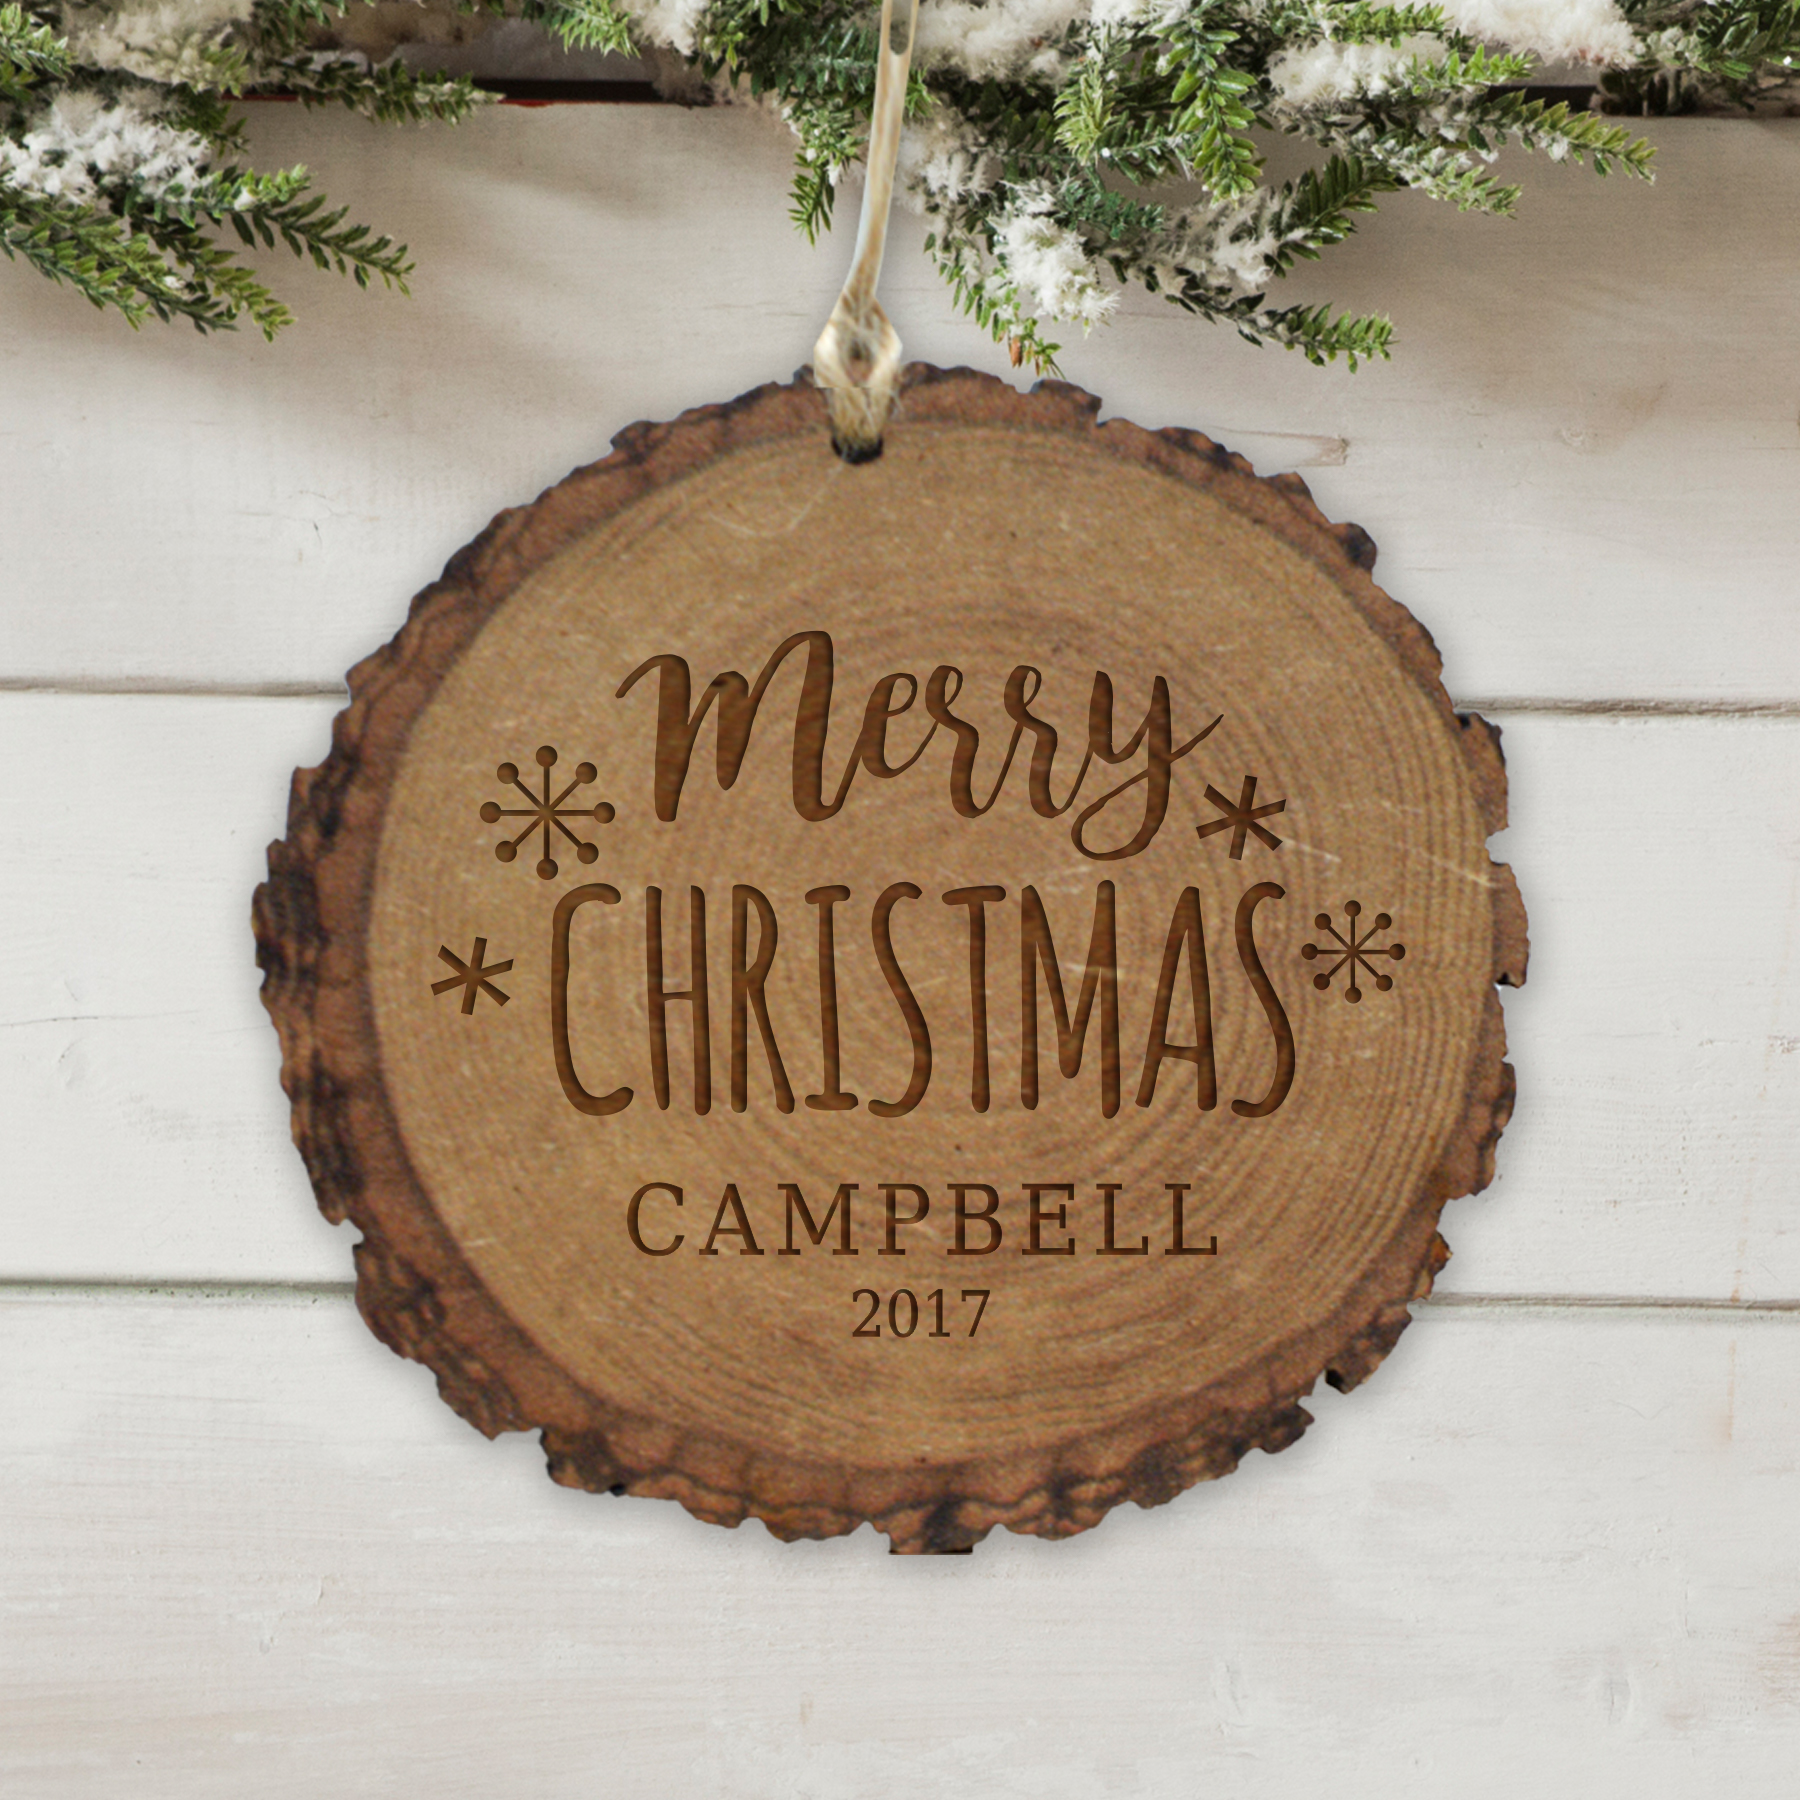 Engraved Merry Christmas Rustic Wood Ornament | Personalized Christmas Ornaments